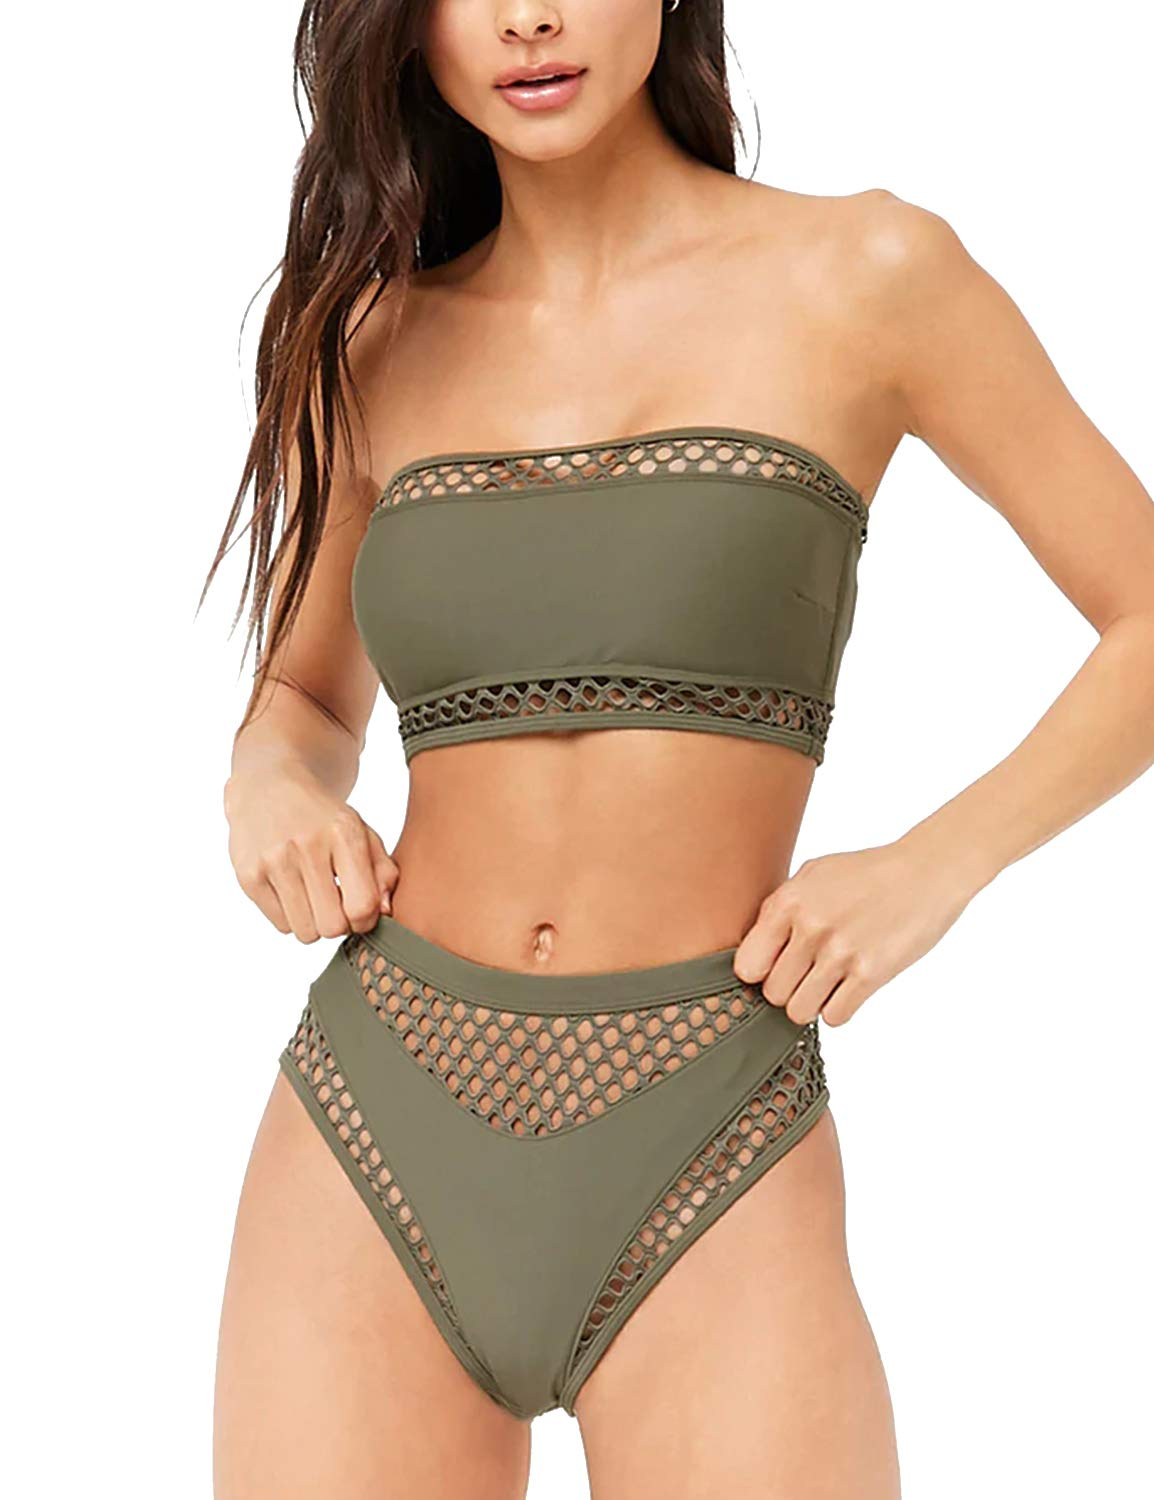 Women's Bandage Bikini High Waist Swimsuit High Cut Swimwear Sexy Mesh Bathing Suit Green